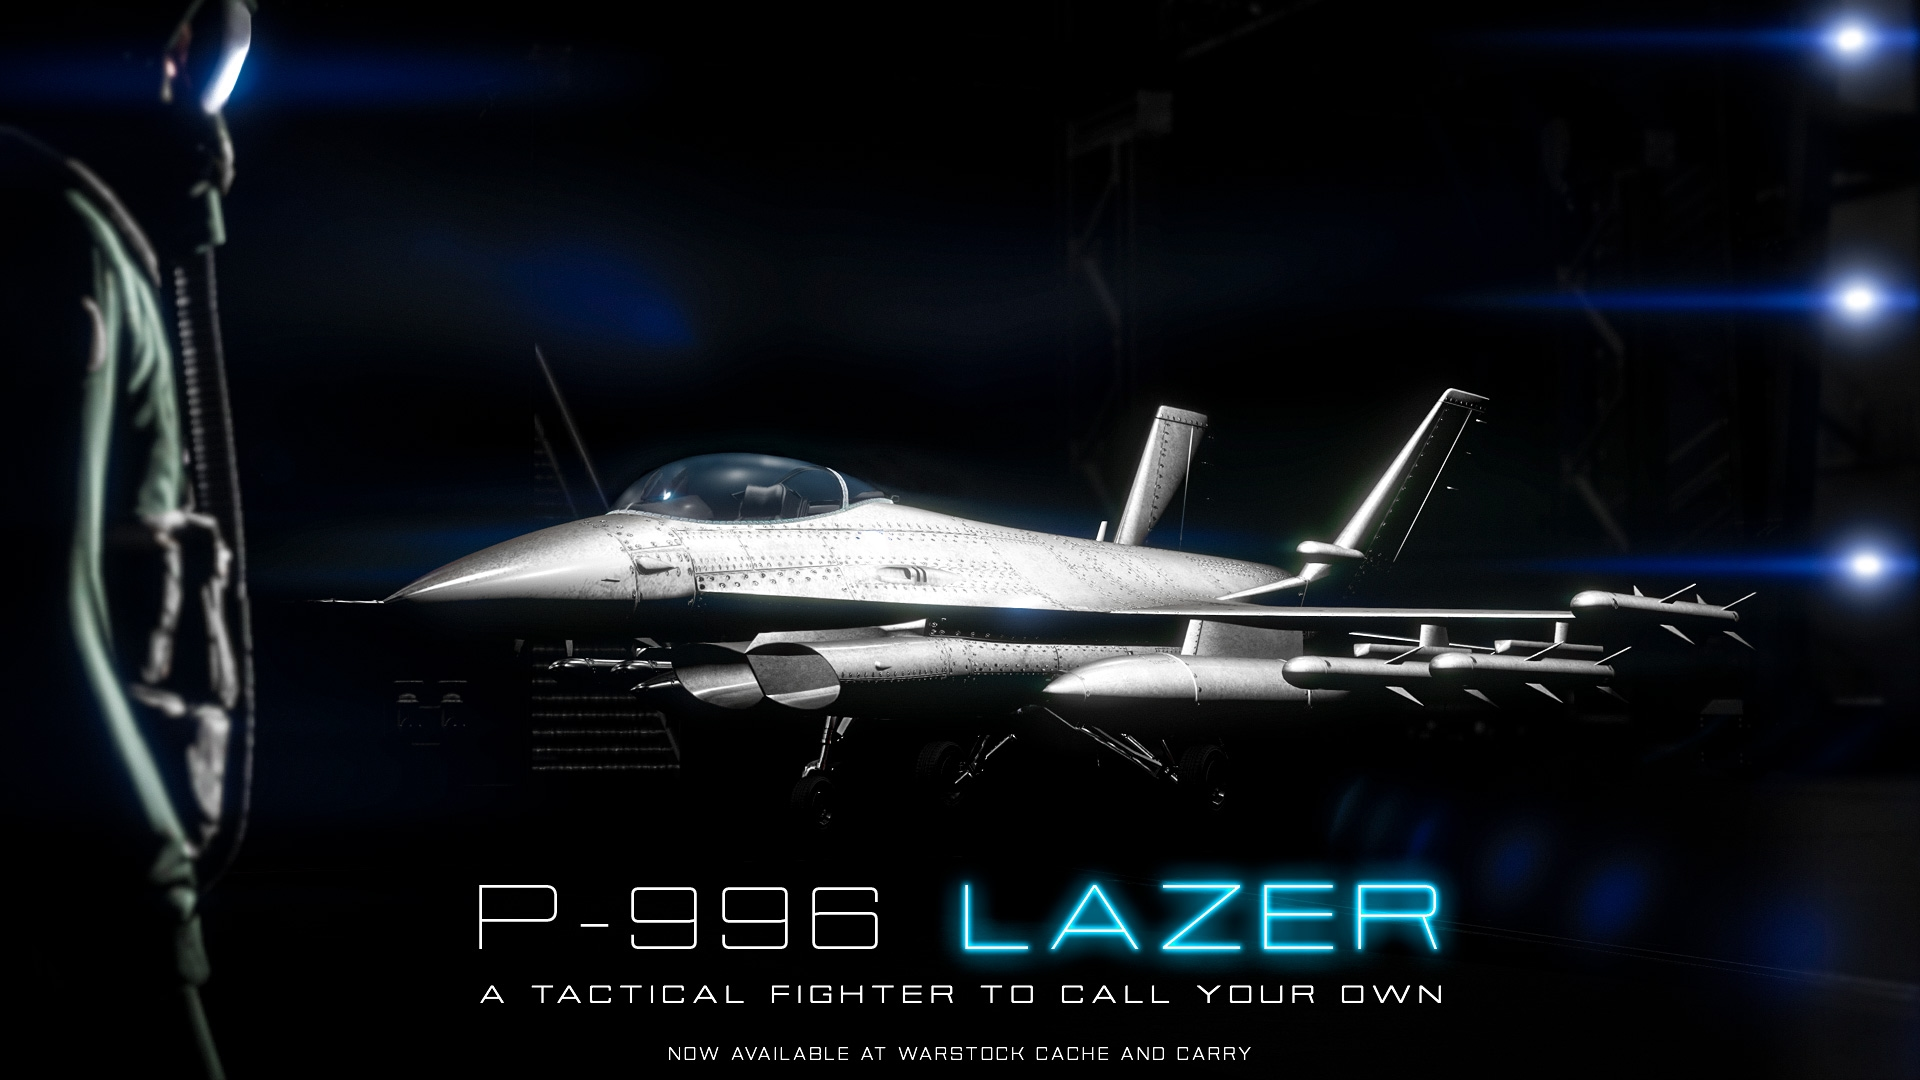 P-996 Lazer and New Creator Tools Now Available in GTA Online